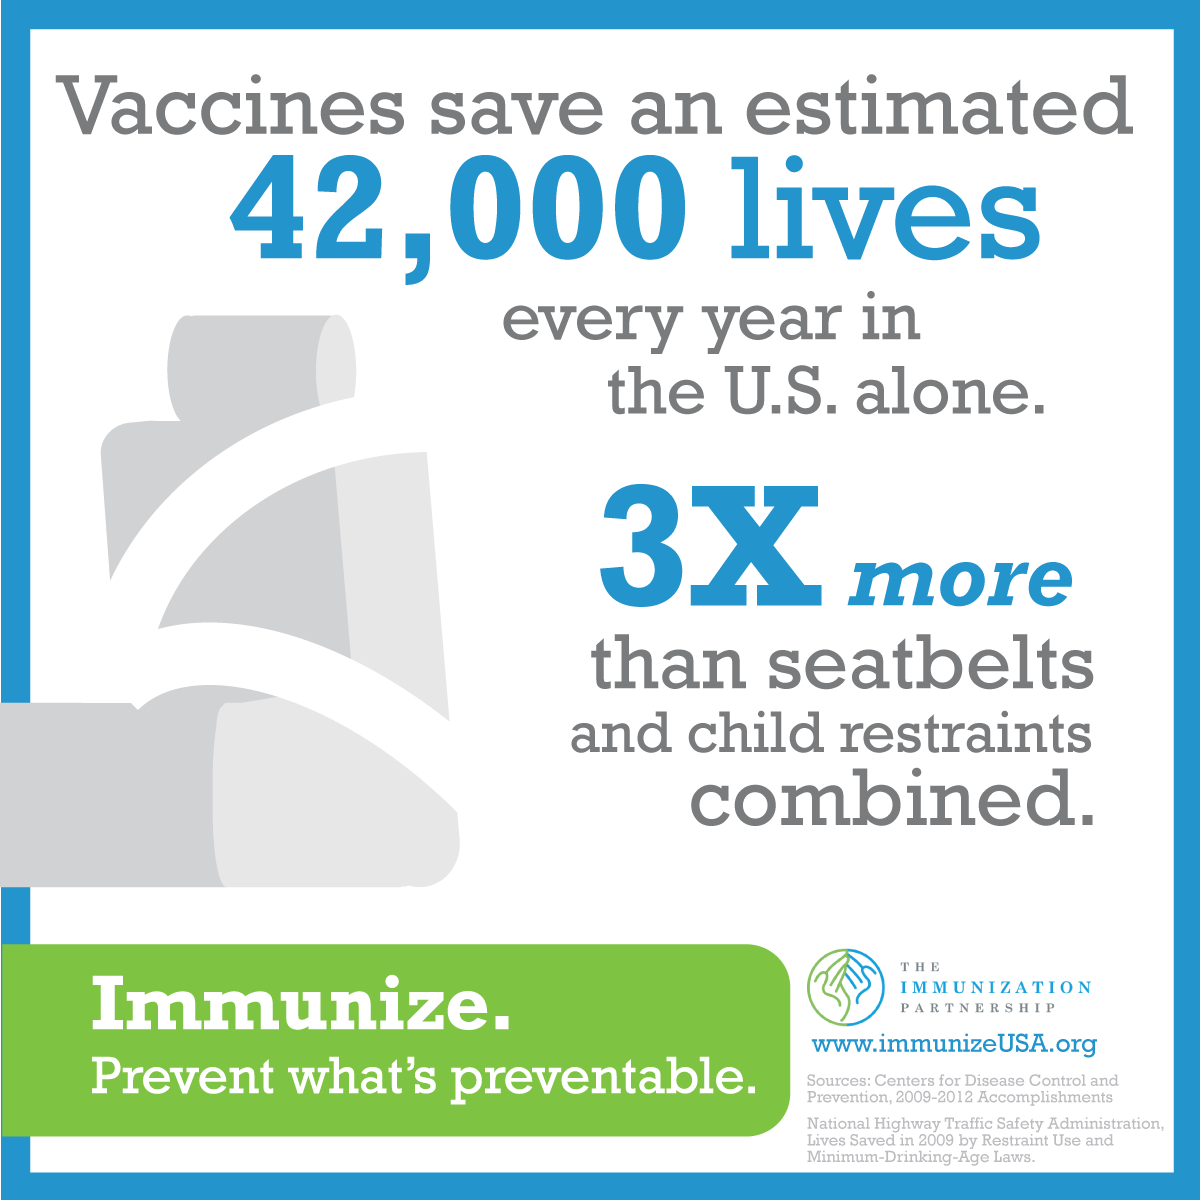 """Graphic reads, """"Vaccines save an estimated 42,000 lives every year in the U.S. alone., 3 times more than seatbelts and child restraints combined."""""""